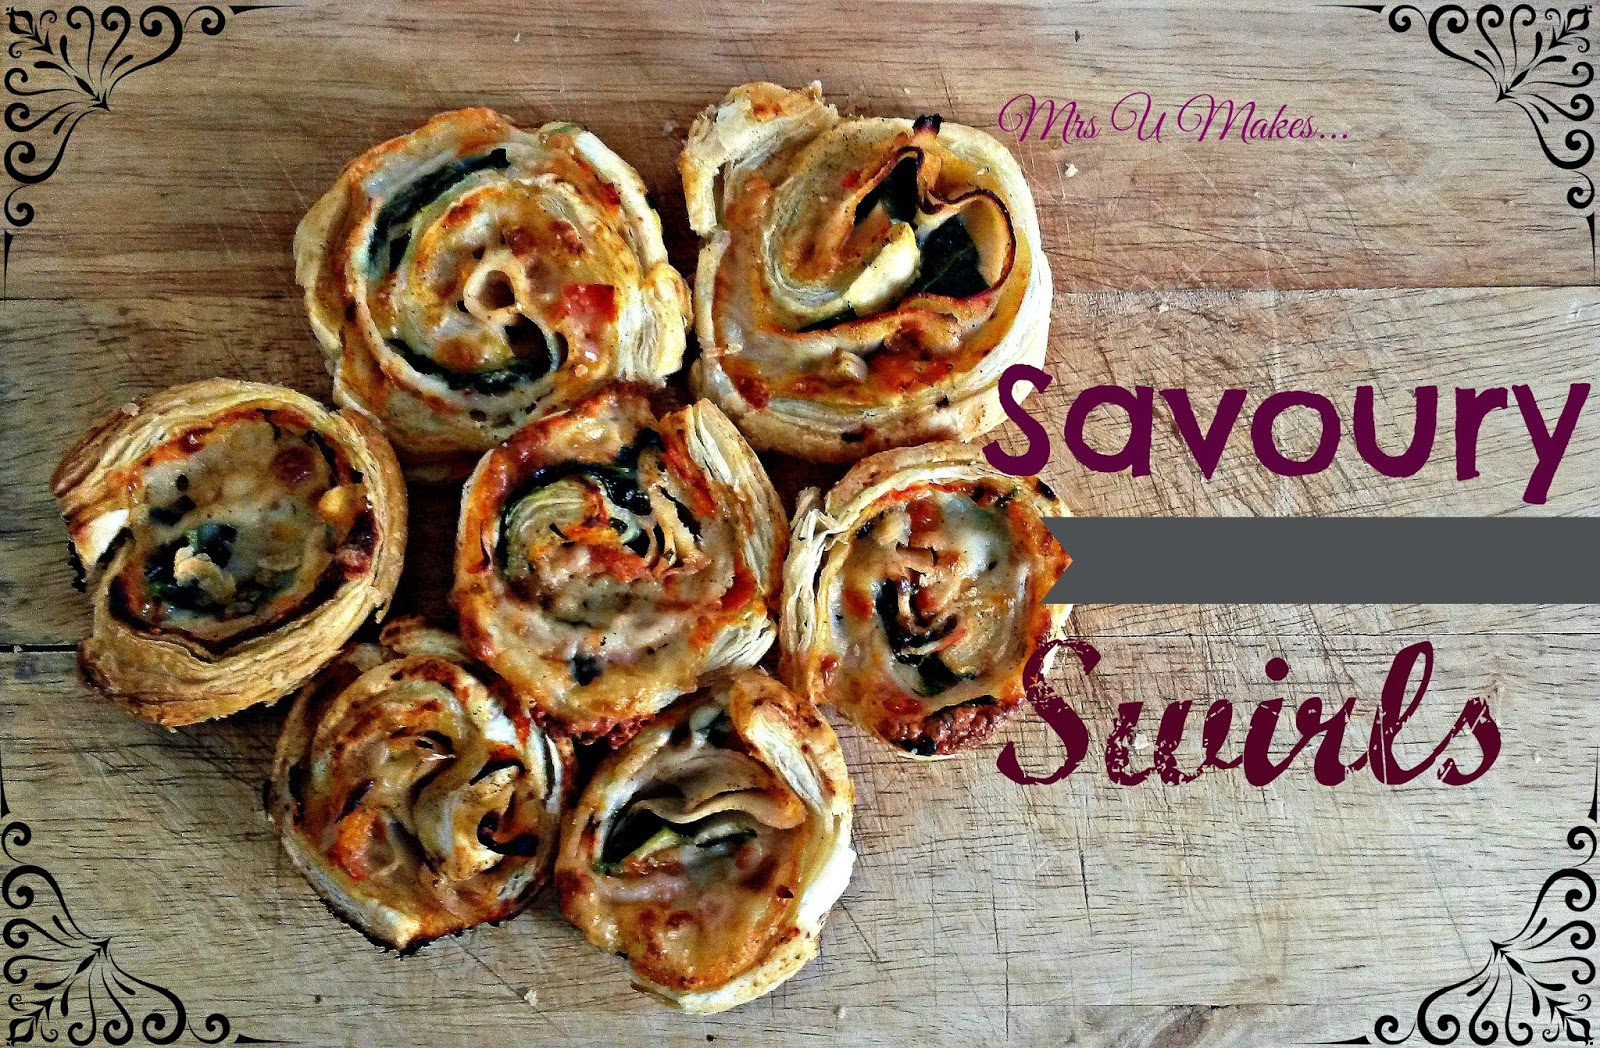 Mrs U Makes... Savoury Swirls